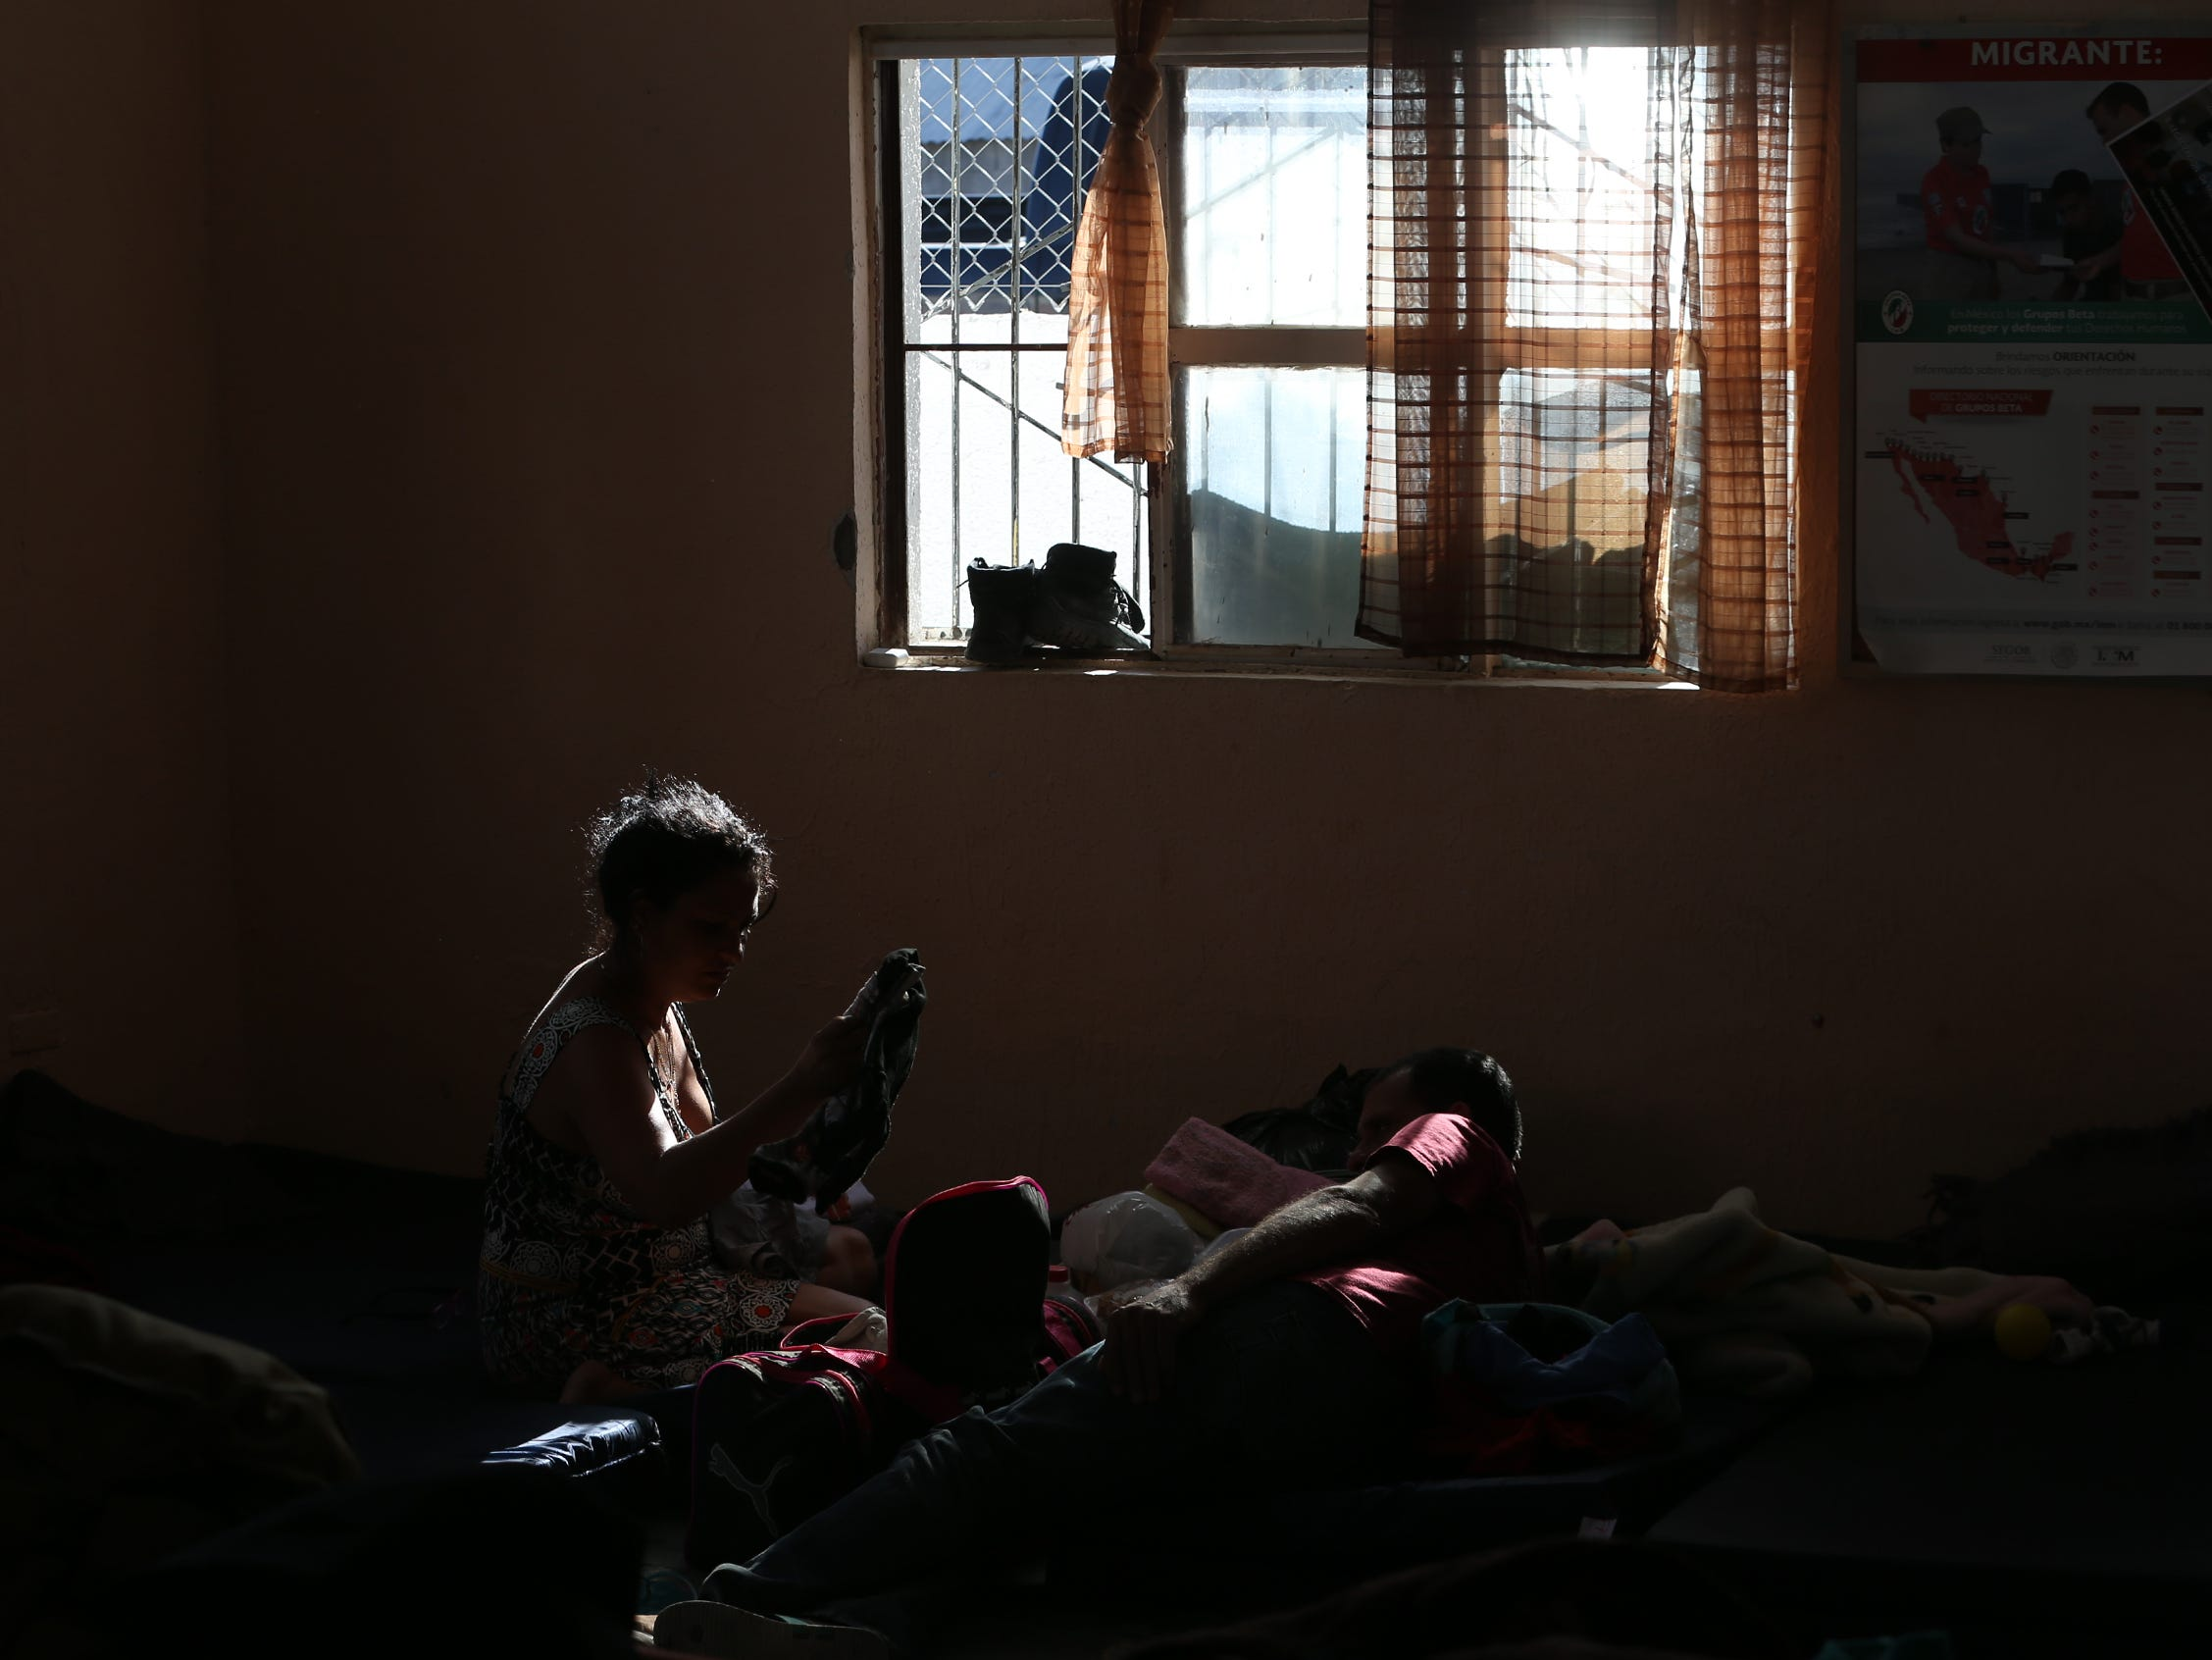 A woman from El Salvador organizes her family's clothing a the Albergue Para Migrantes in Juarez as they await their initial asylum hearing.